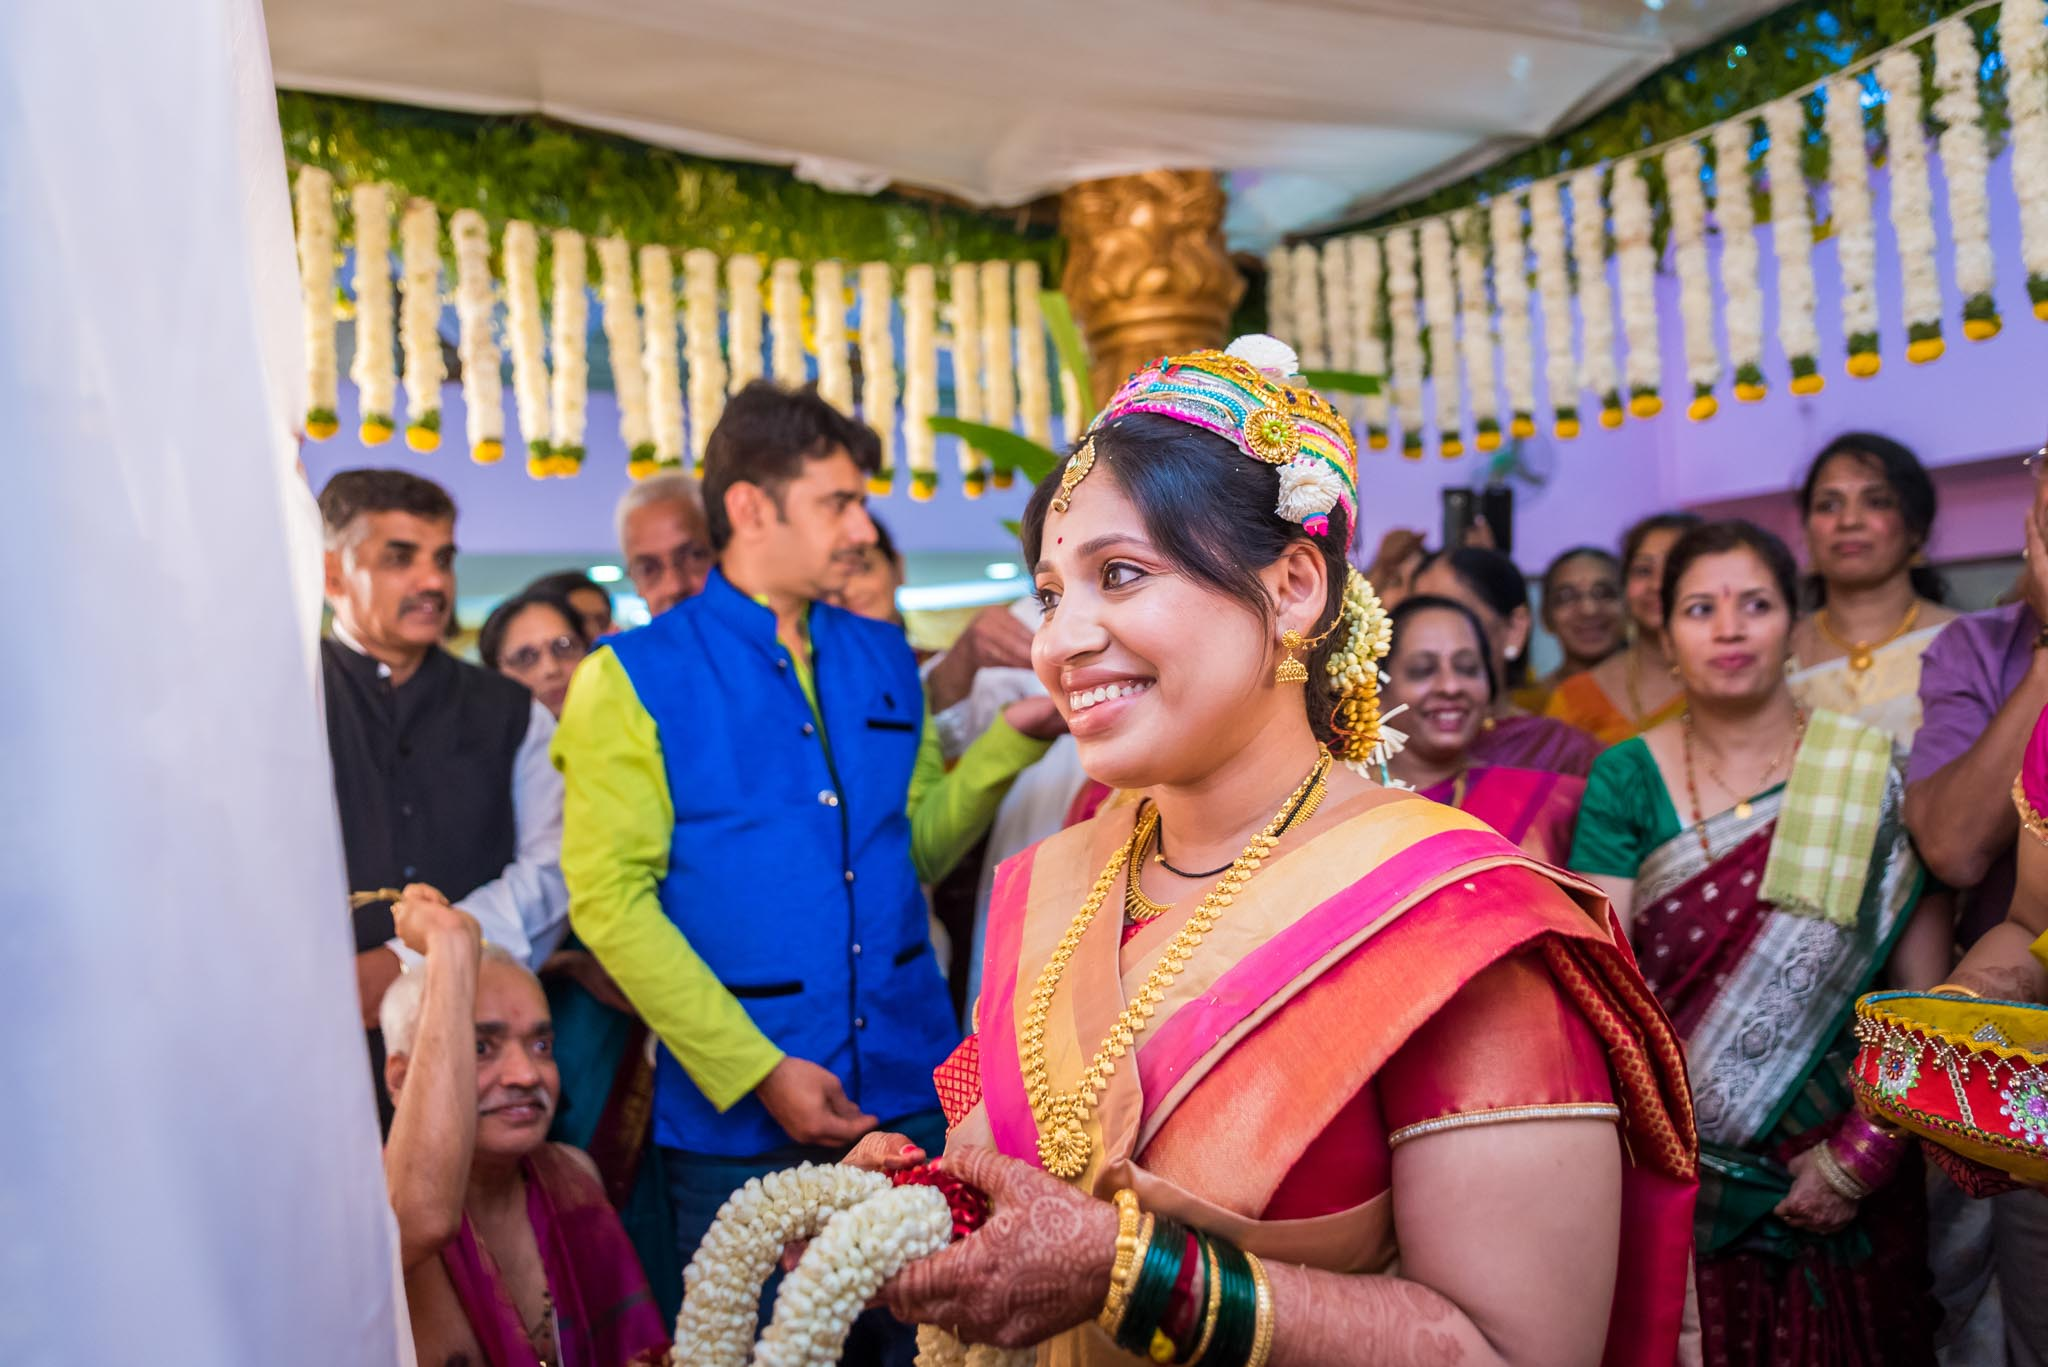 WhatKnot-Candid-Wedding-Photography-Mumbai-Bangalore-162